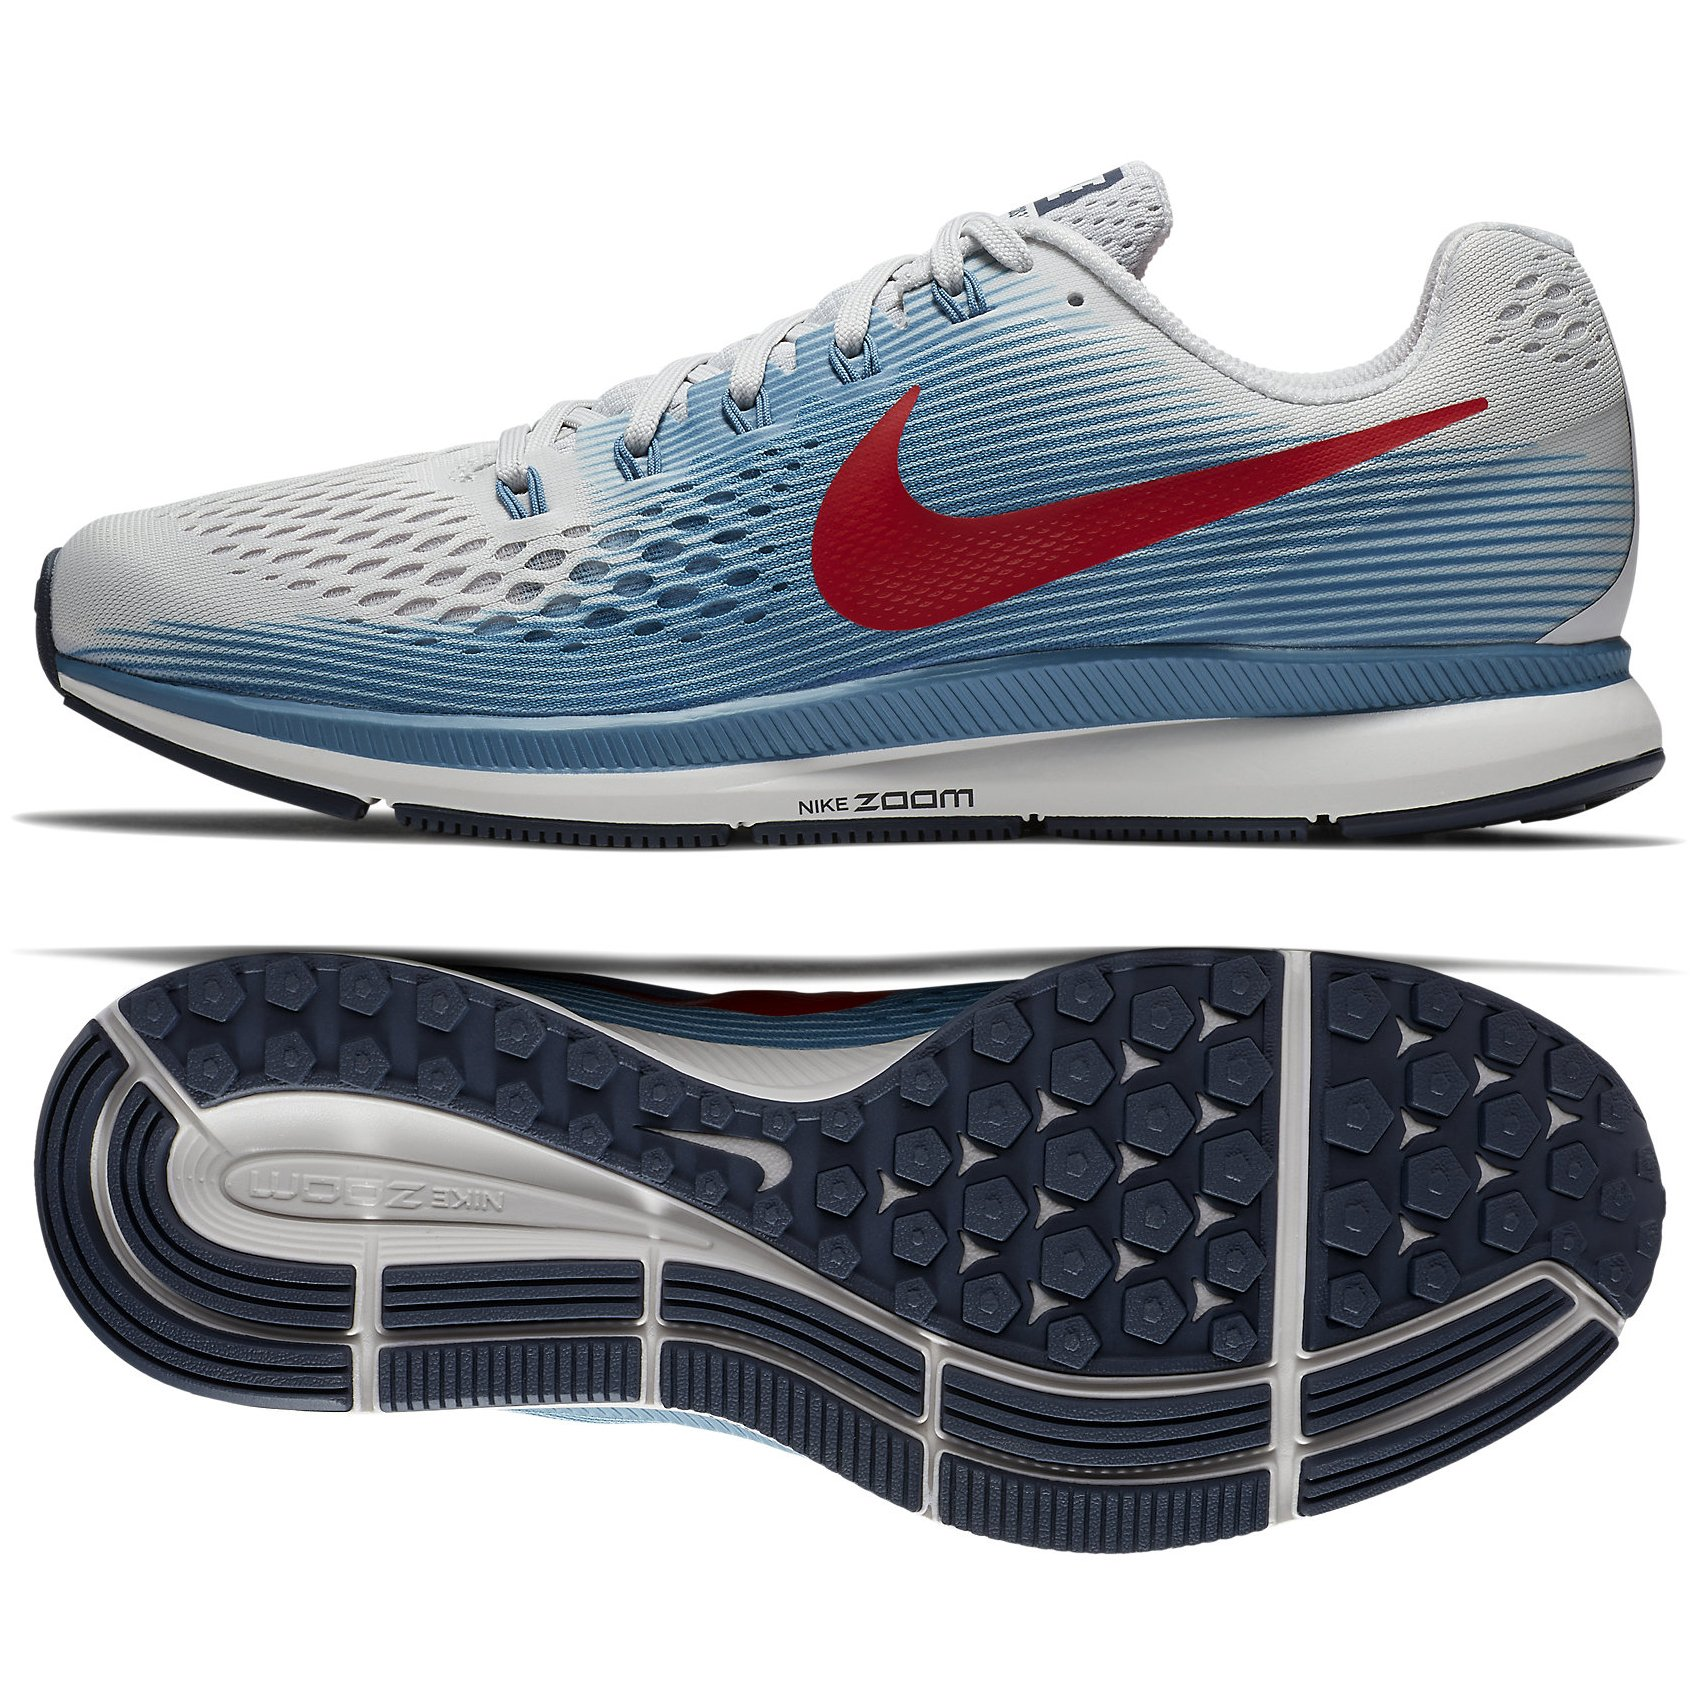 b460627a618f Galleon - NIKE Air Zoom Pegasus 34 880555-016 Vast Grey Storm Blue Red Men s  Running Shoes (12.5)